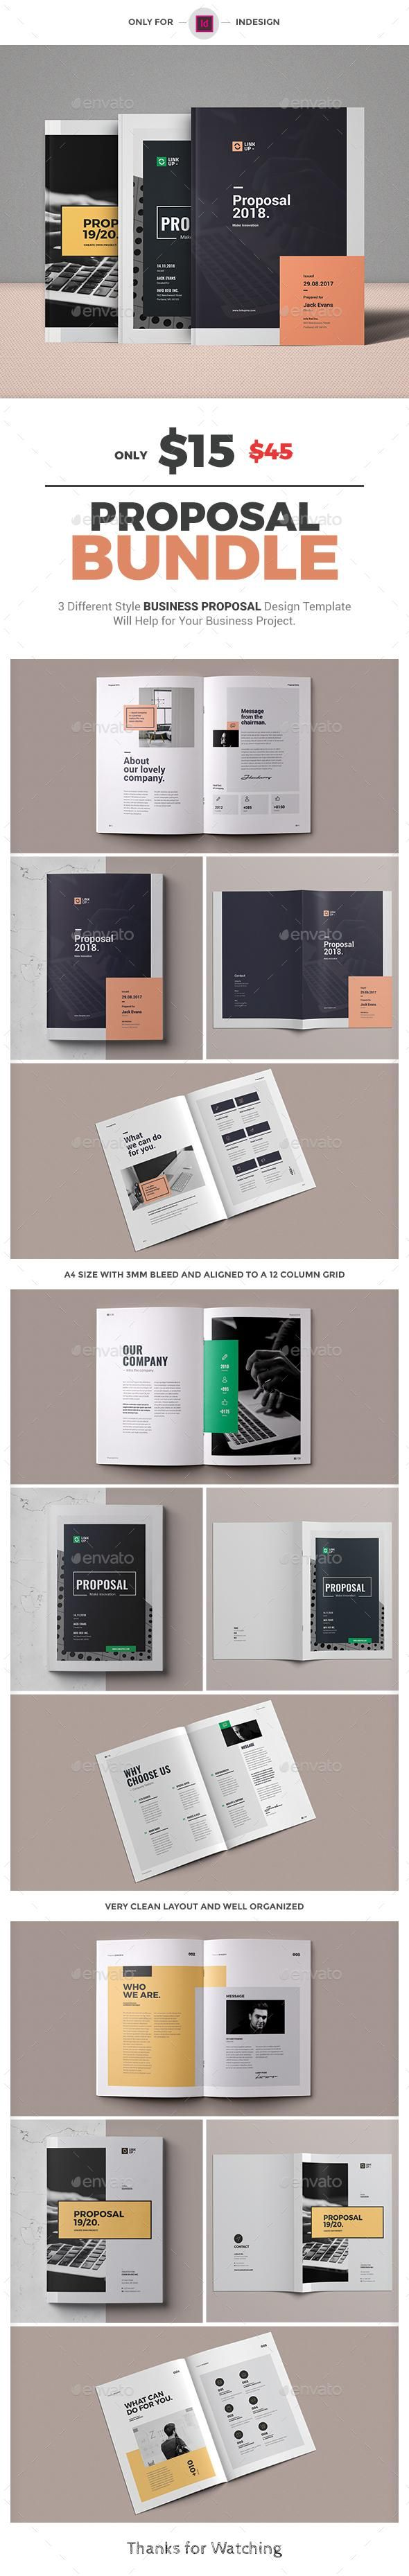 Proposal for 15 proposal invoice stationery PrintDesign